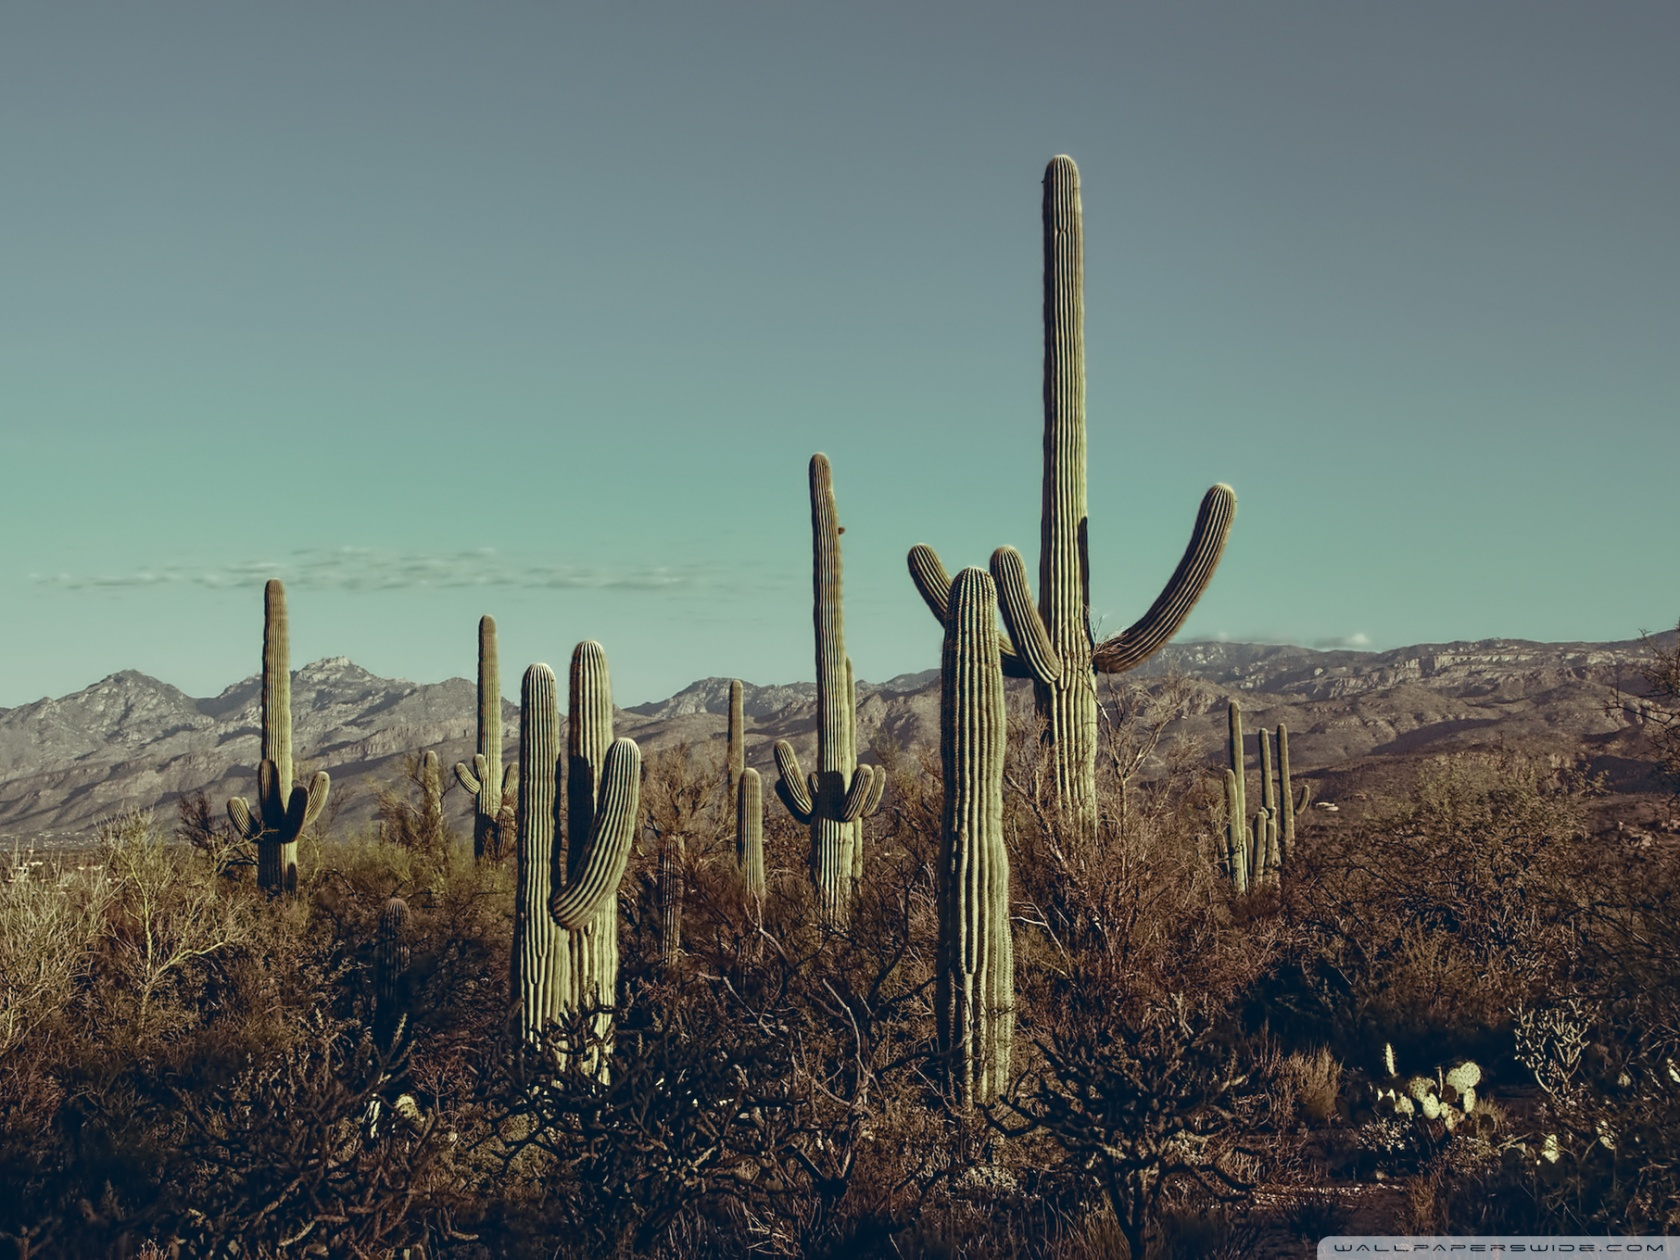 Saguaro National Park East Arizona 4K HD Desktop Wallpaper for 1680x1260